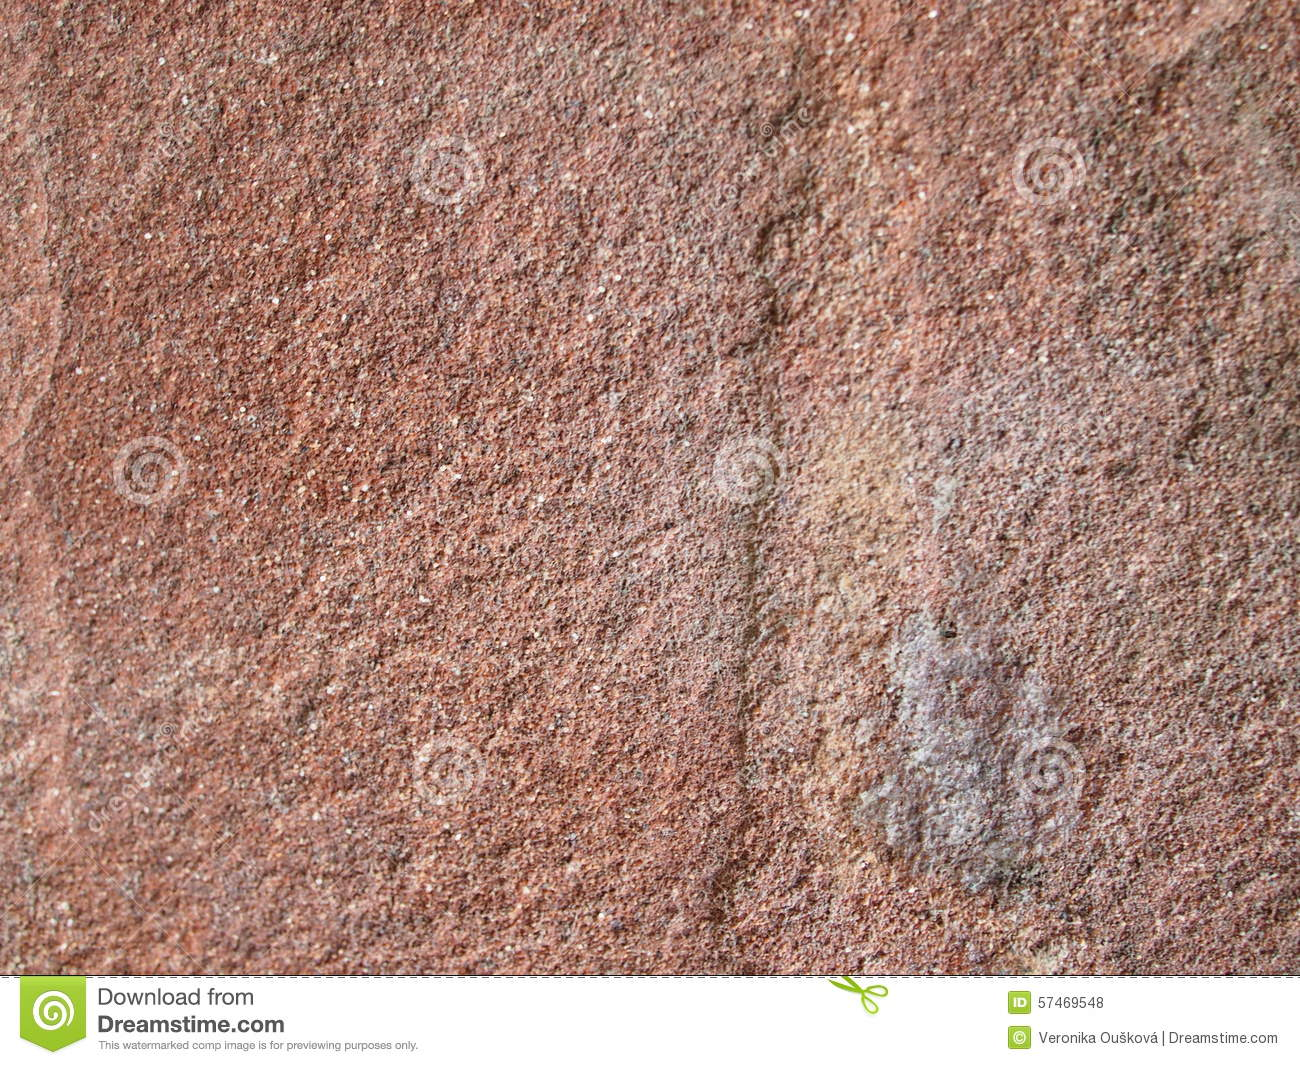 Detail Look At Arkosic Sandstone Stone Stock Photo - Image: 57469548